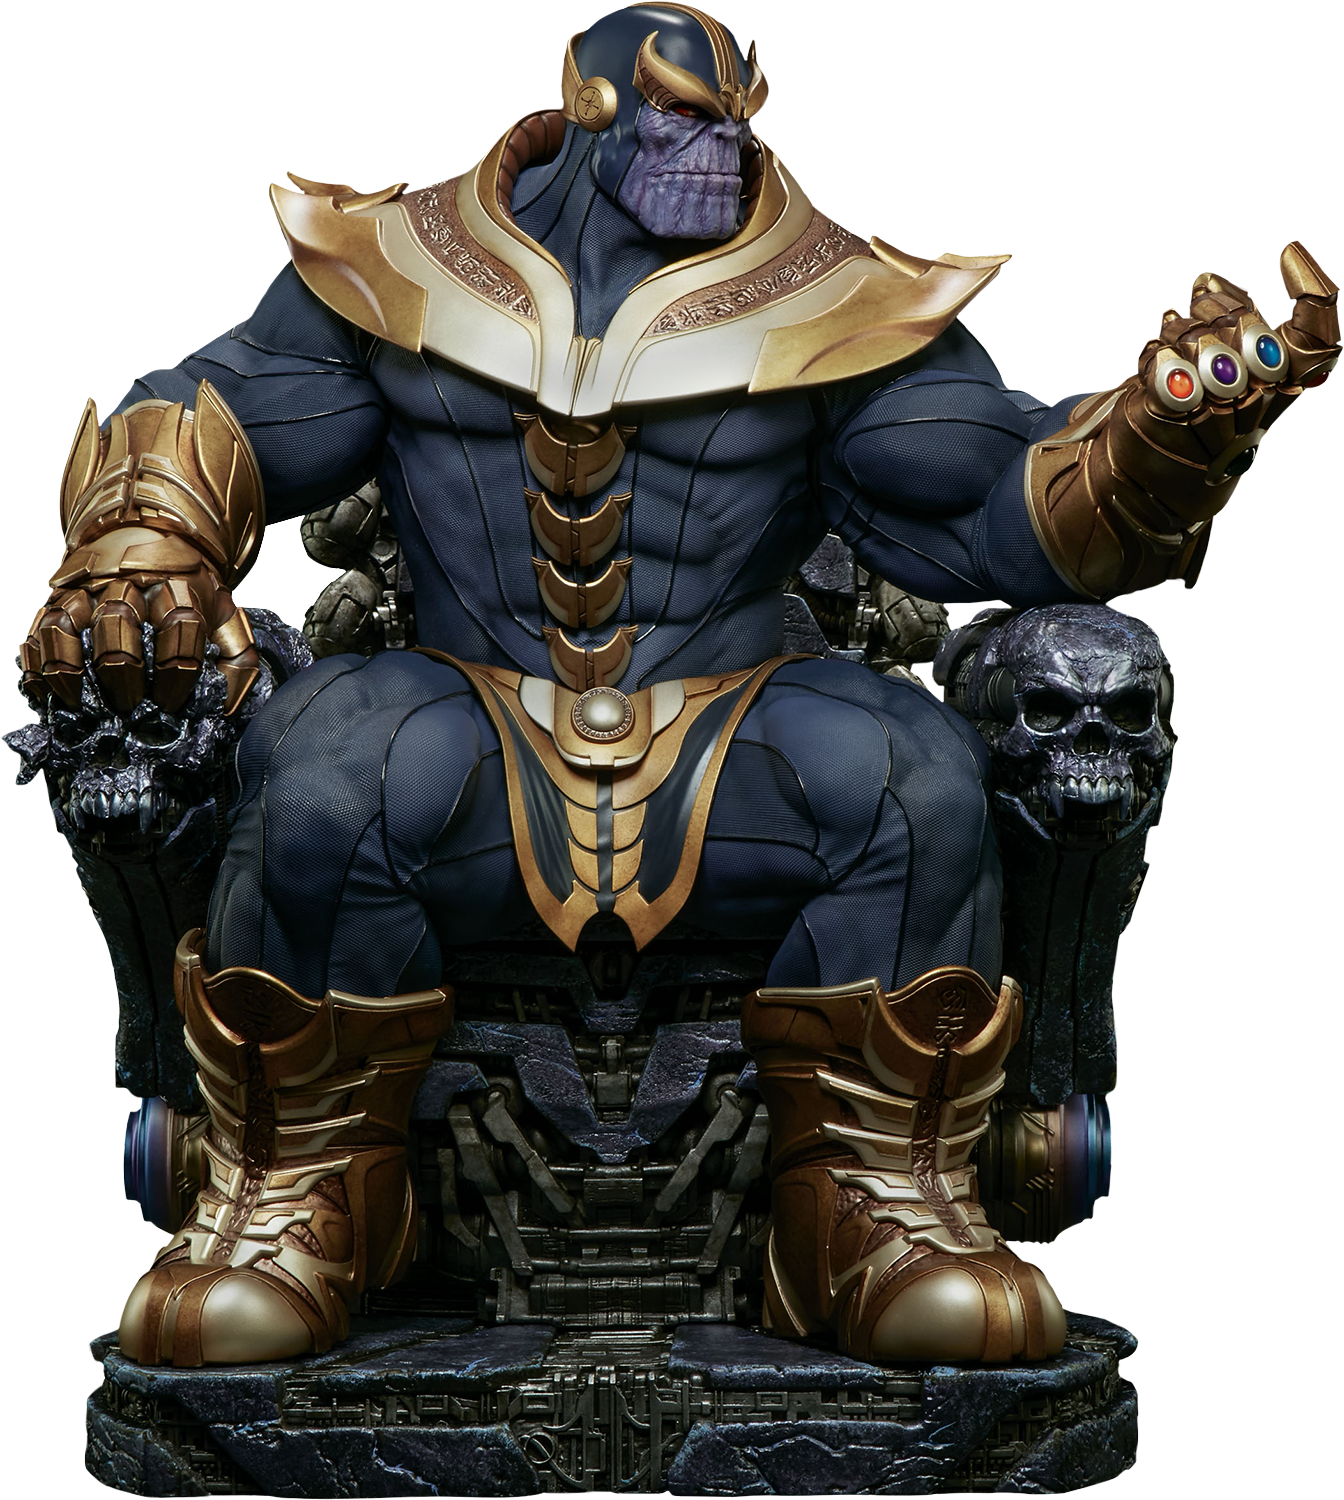 Thanos glove png. The infinity gauntlet on